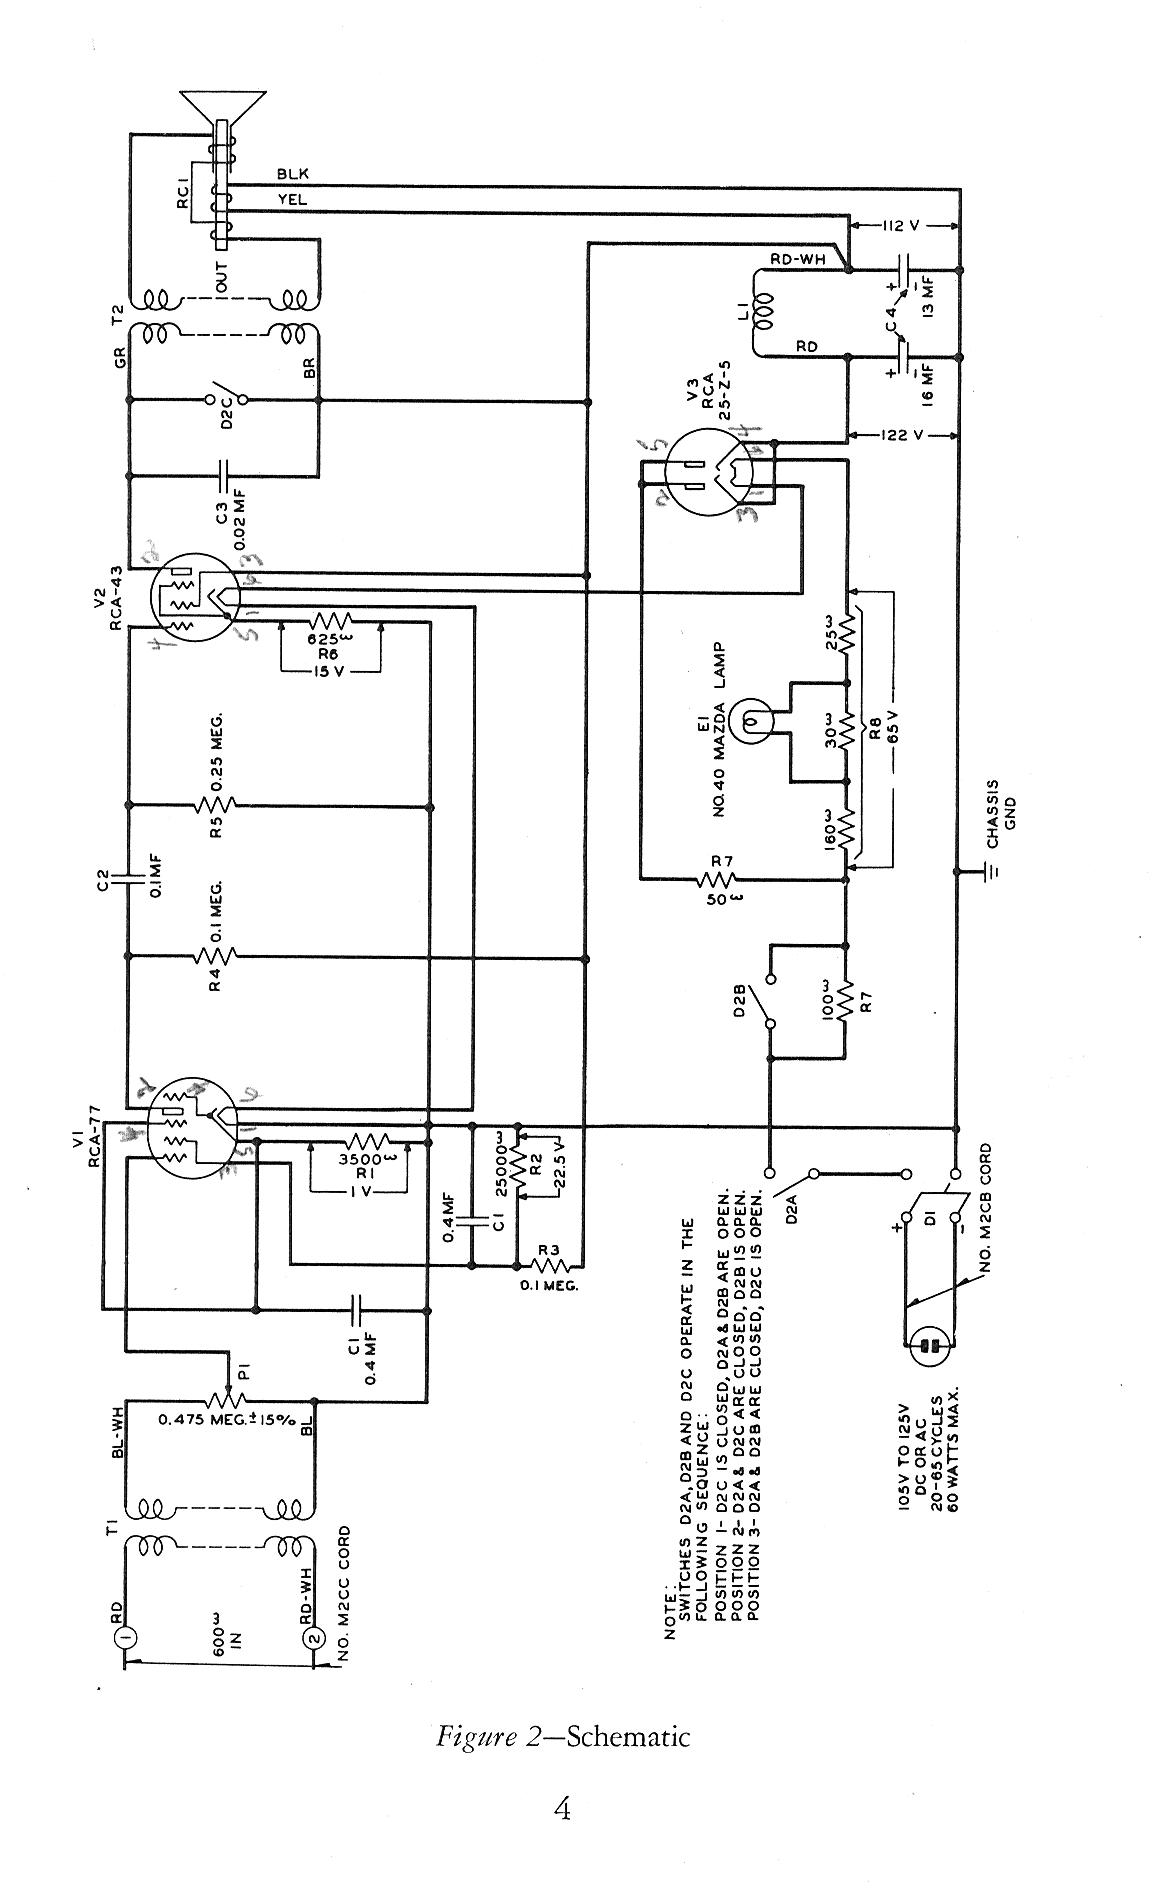 Old Telephone Wiring Diagram. Old Phone System Diagrams